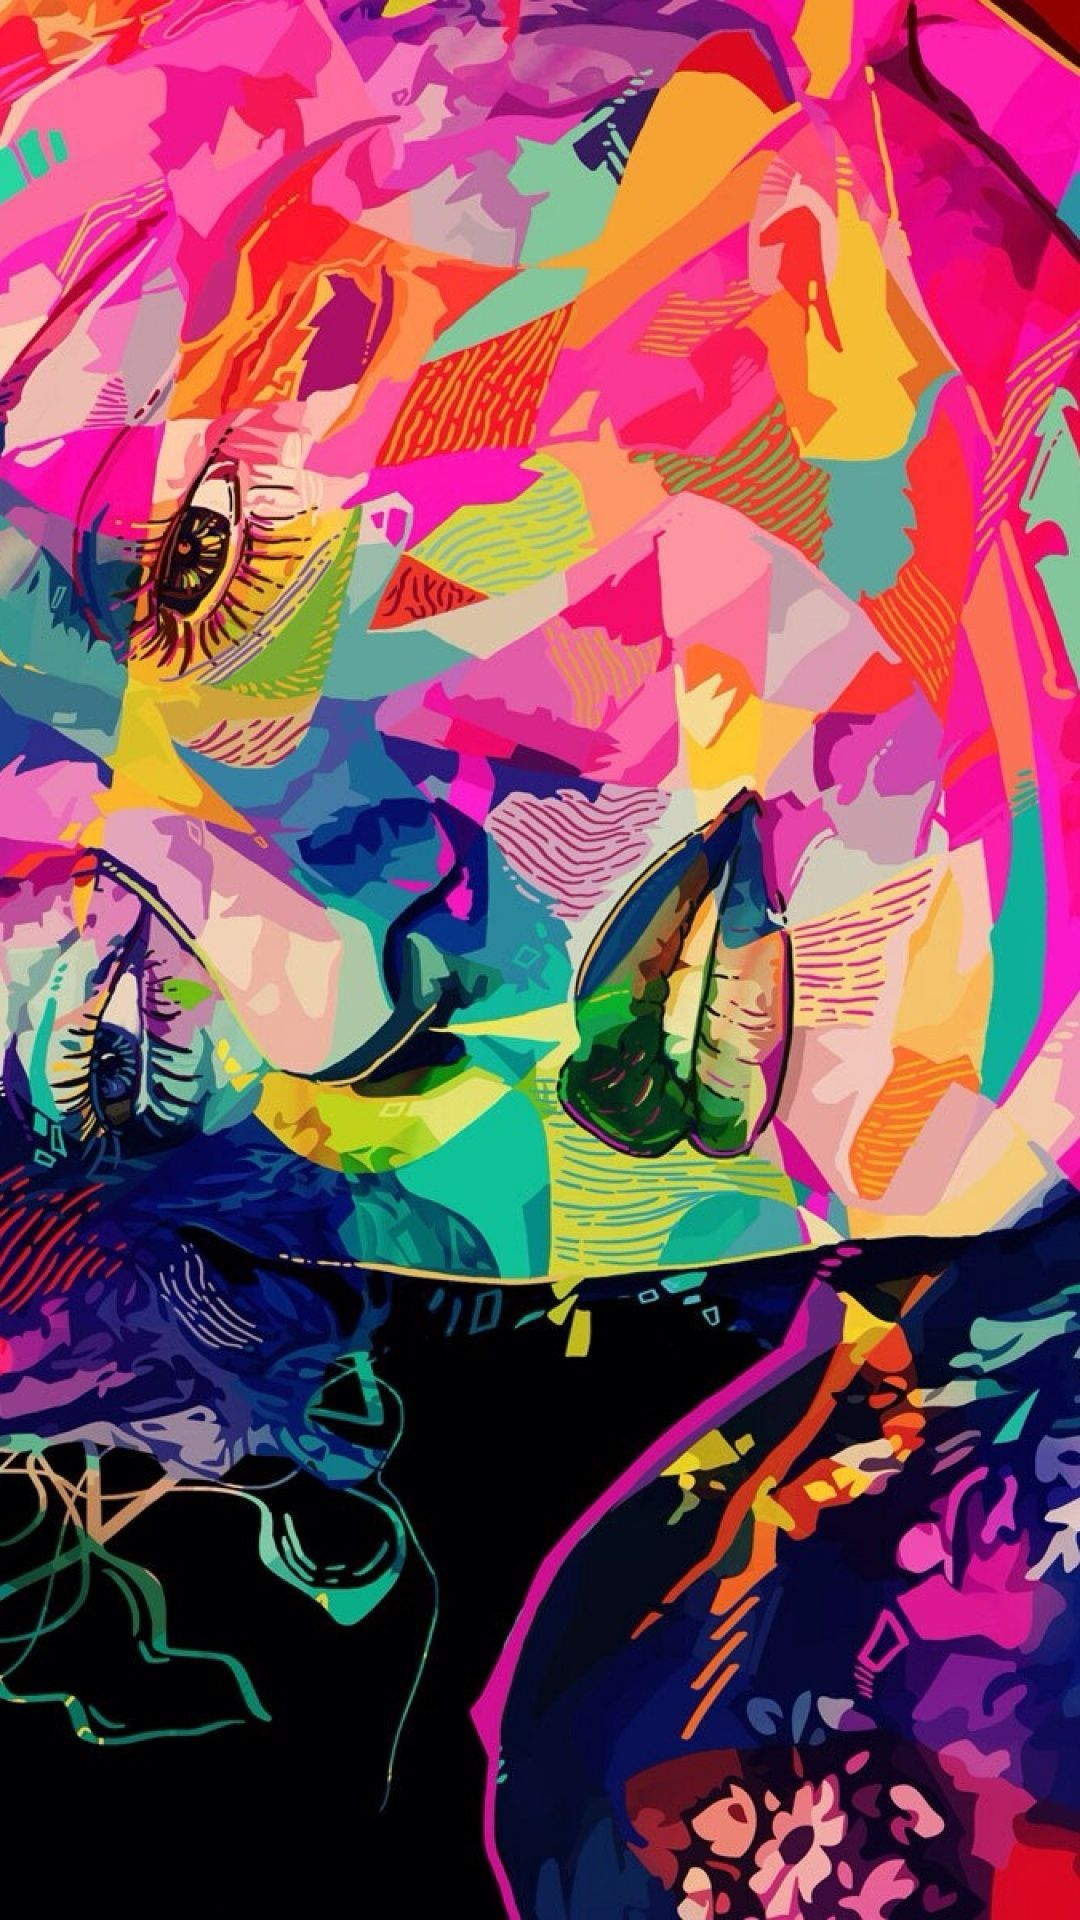 Wallpaper iphone psychedelic - Best Psychedelic And Trippy Backgrounds Wallpapers For Android